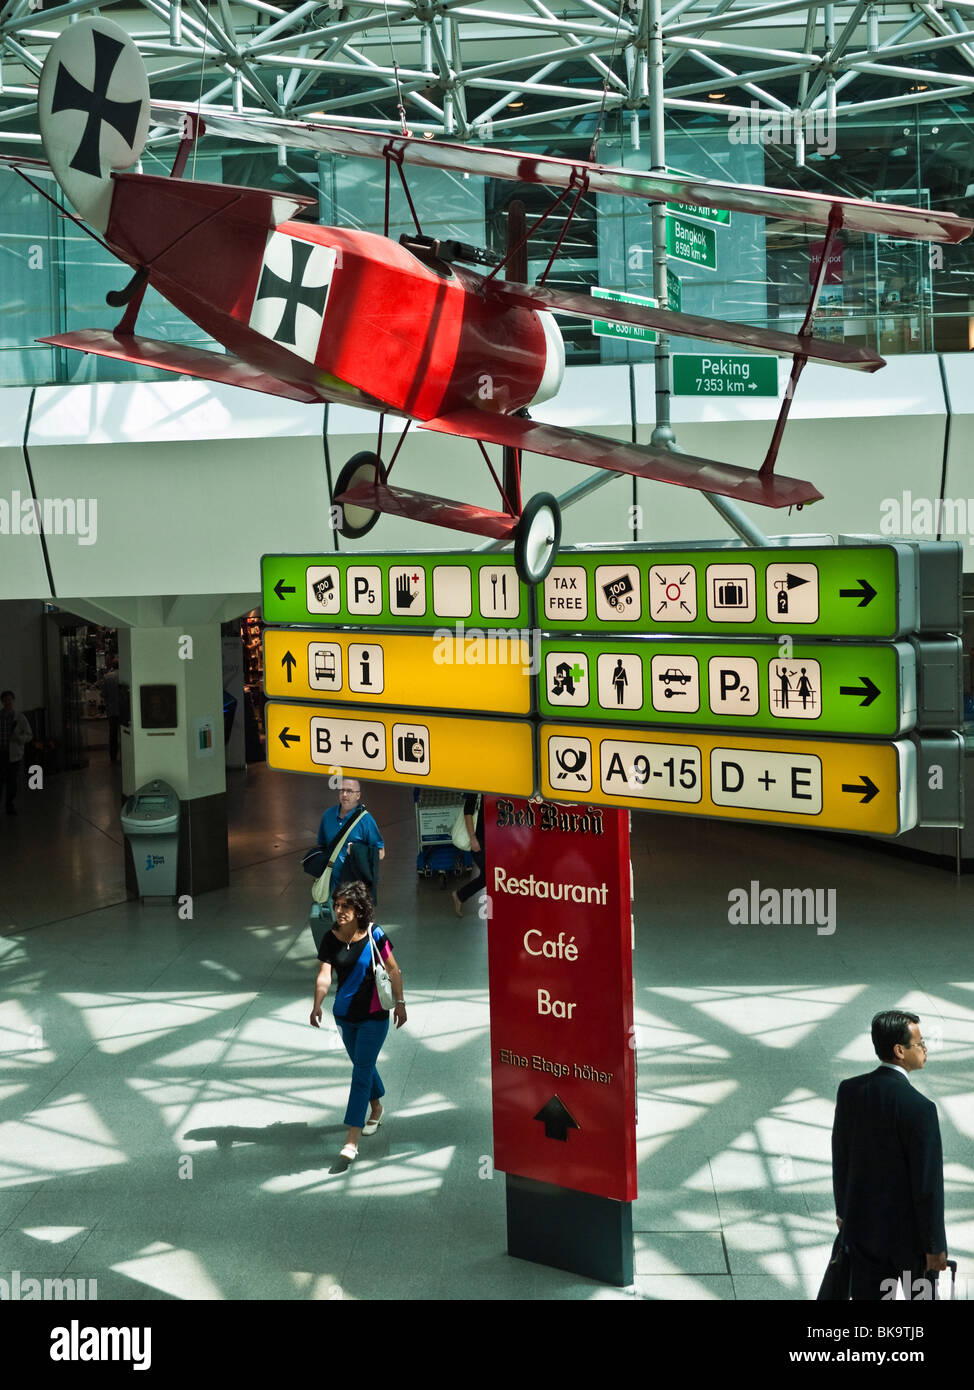 Sign for the Red Baron Restaurant Cafe Bar and suspended replica of the Red Baron's airoplane at Tegel Airport, - Stock Image